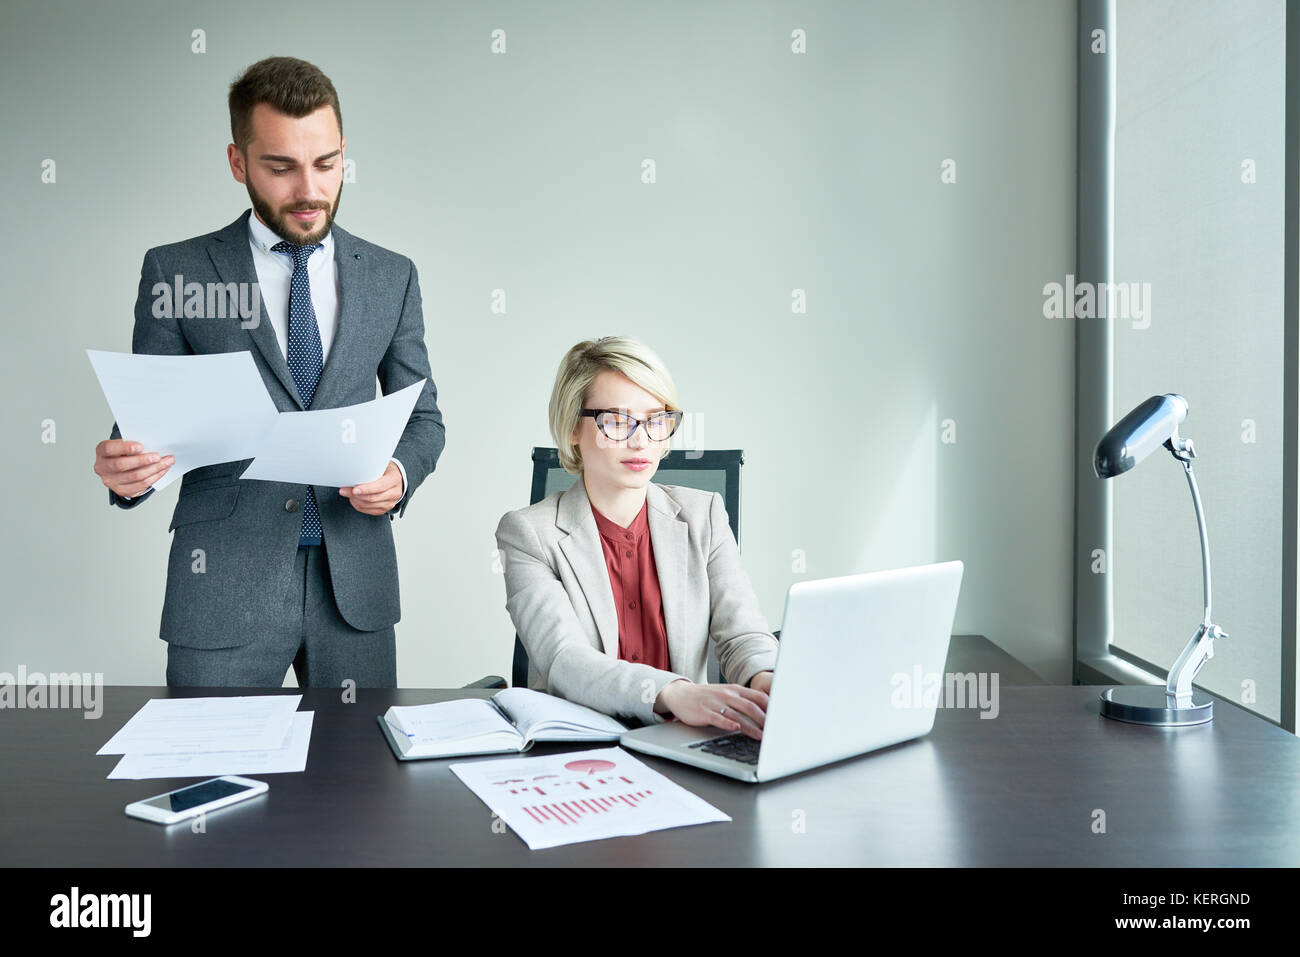 Teamwork at Open Plan Office - Stock Image